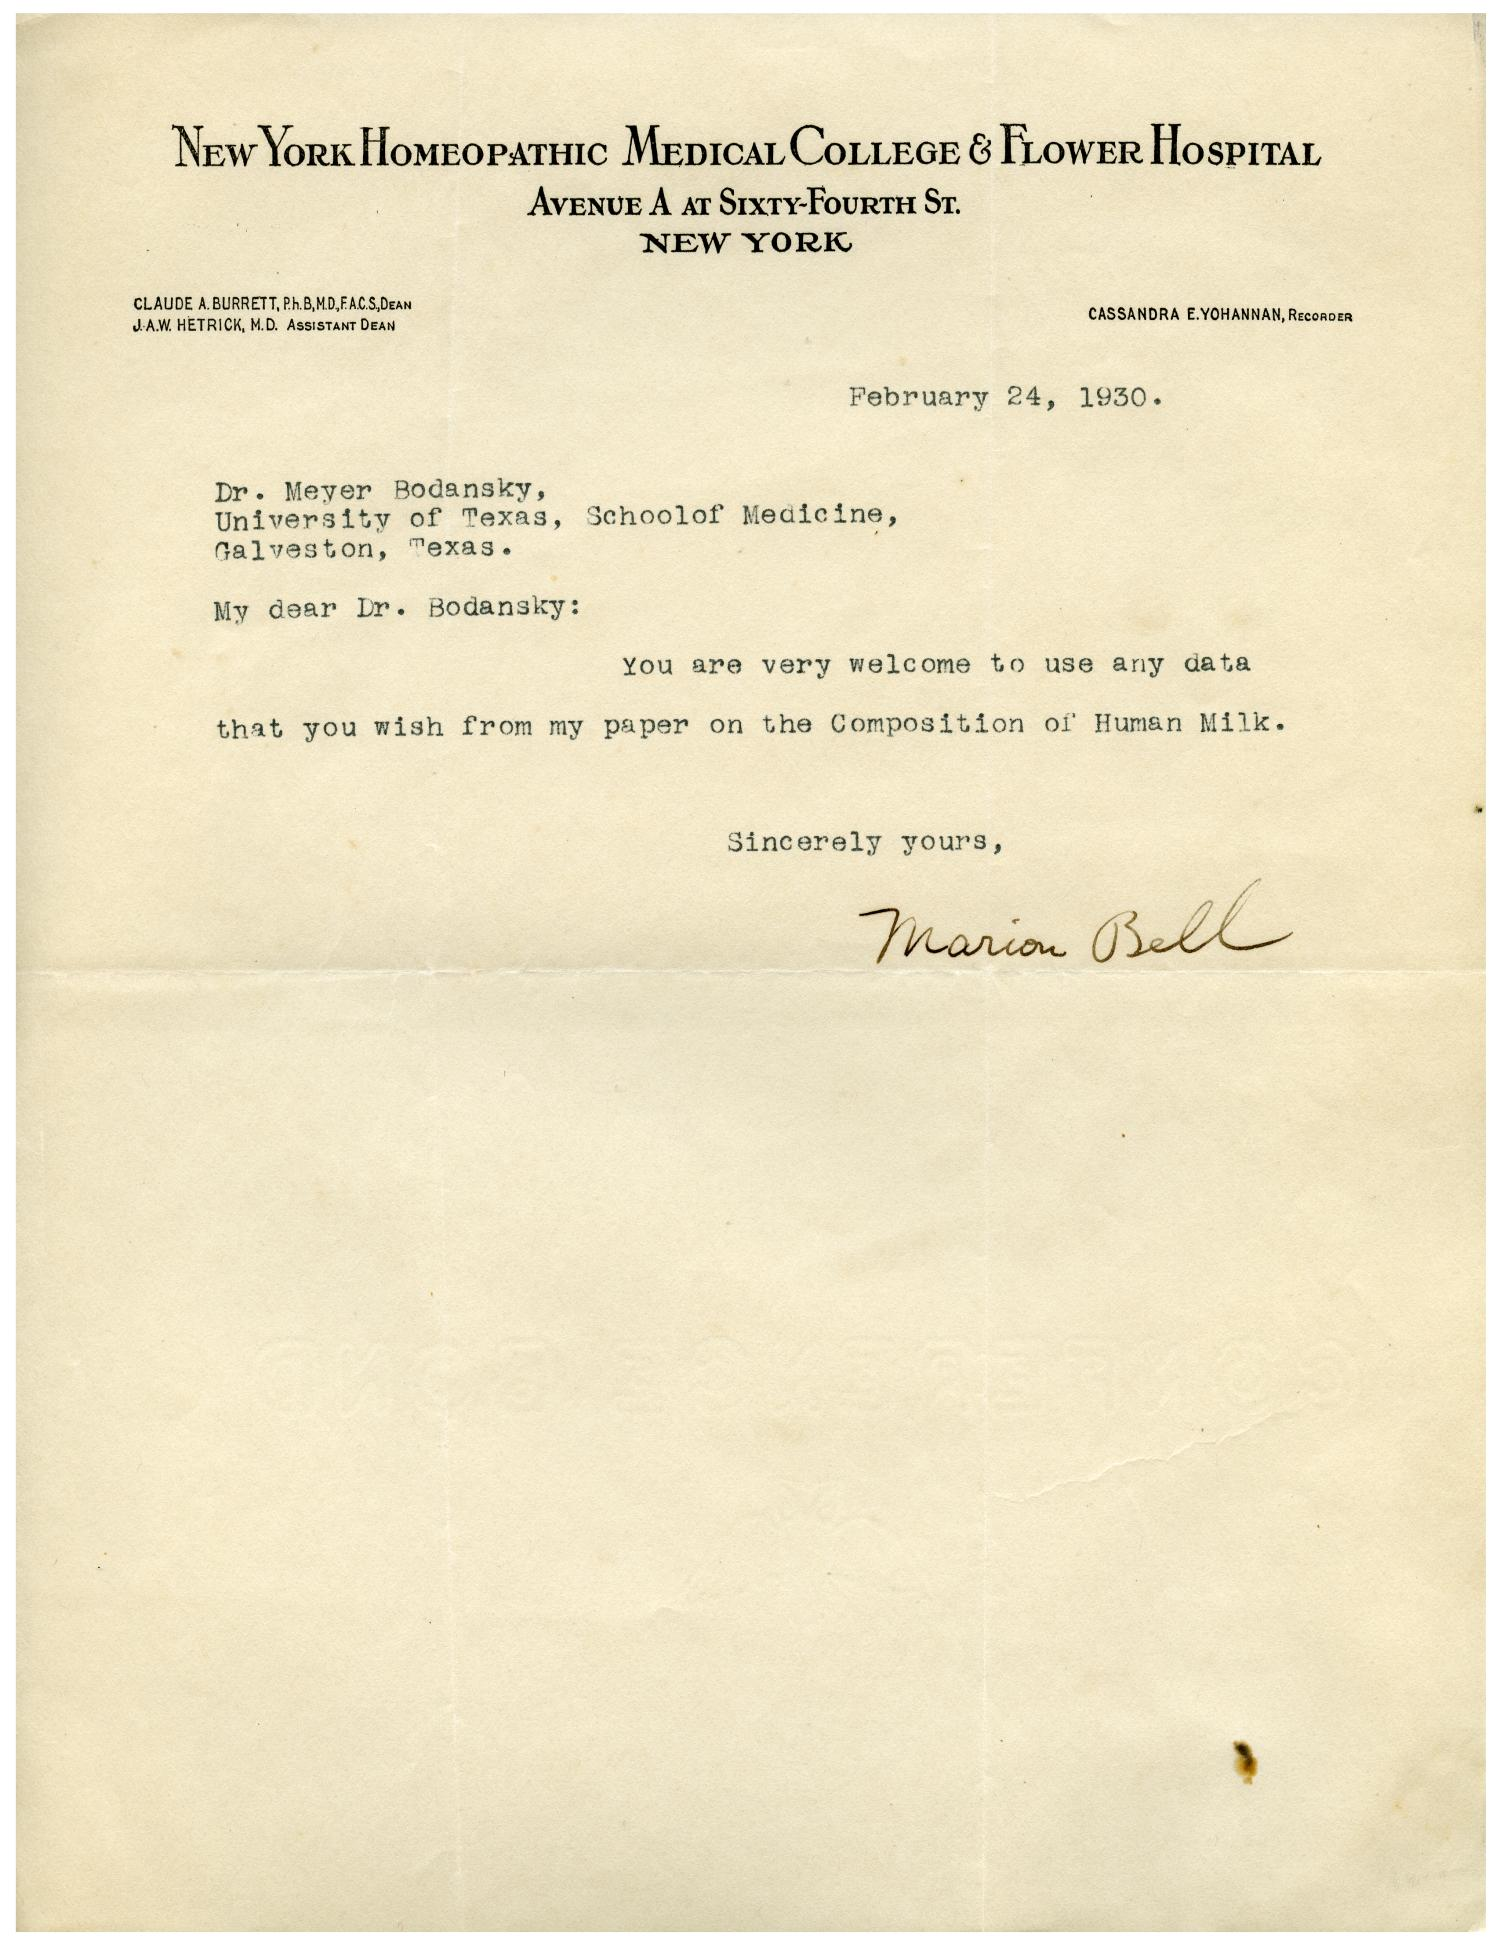 Letter from the new york medical college and flower hospital to dr letter from the new york medical college and flower hospital to dr meyer bodansky february 24 1930 the portal to texas history mitanshu Gallery